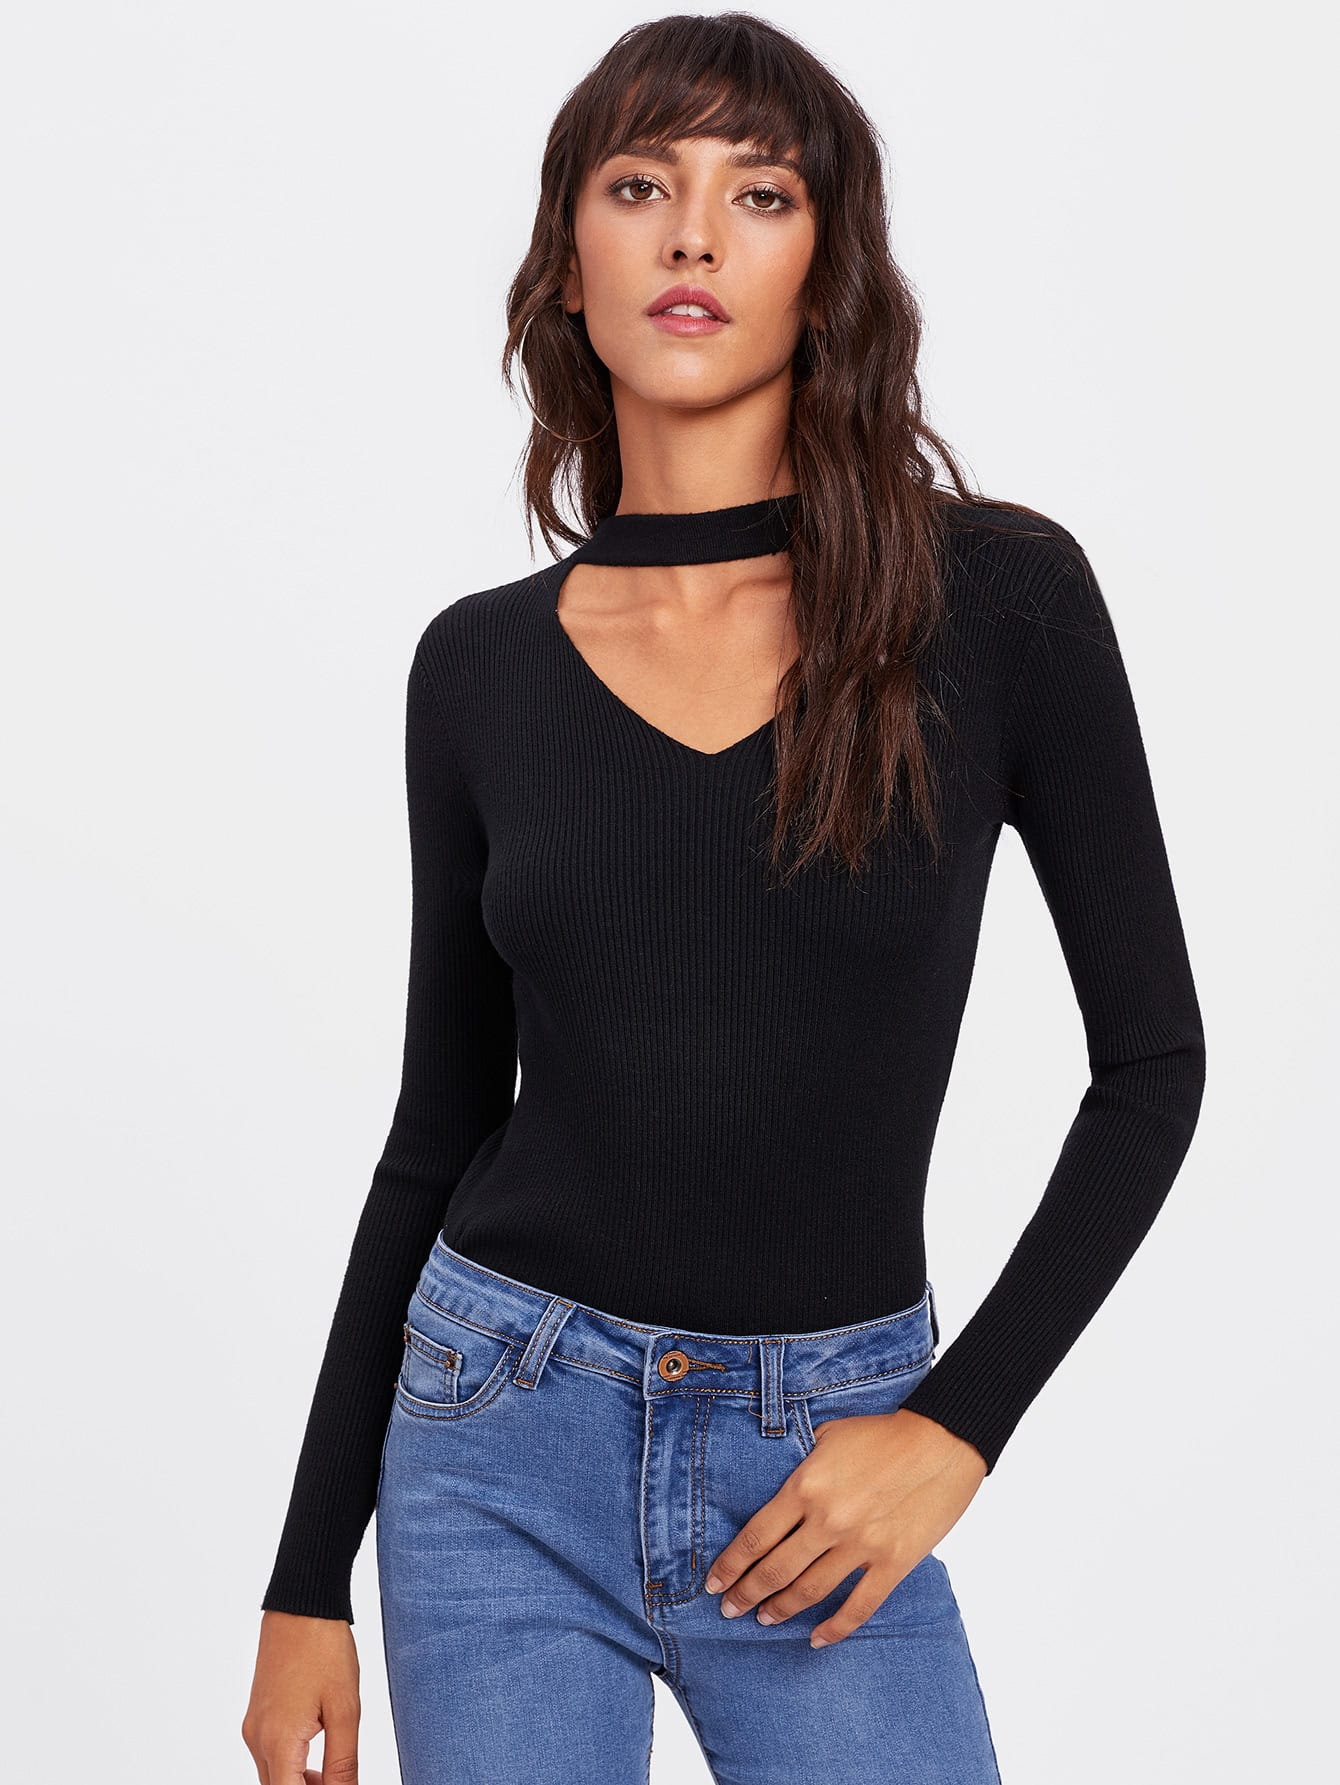 V Cut Neck Ribbed Tee laddering cut v neck solid tee